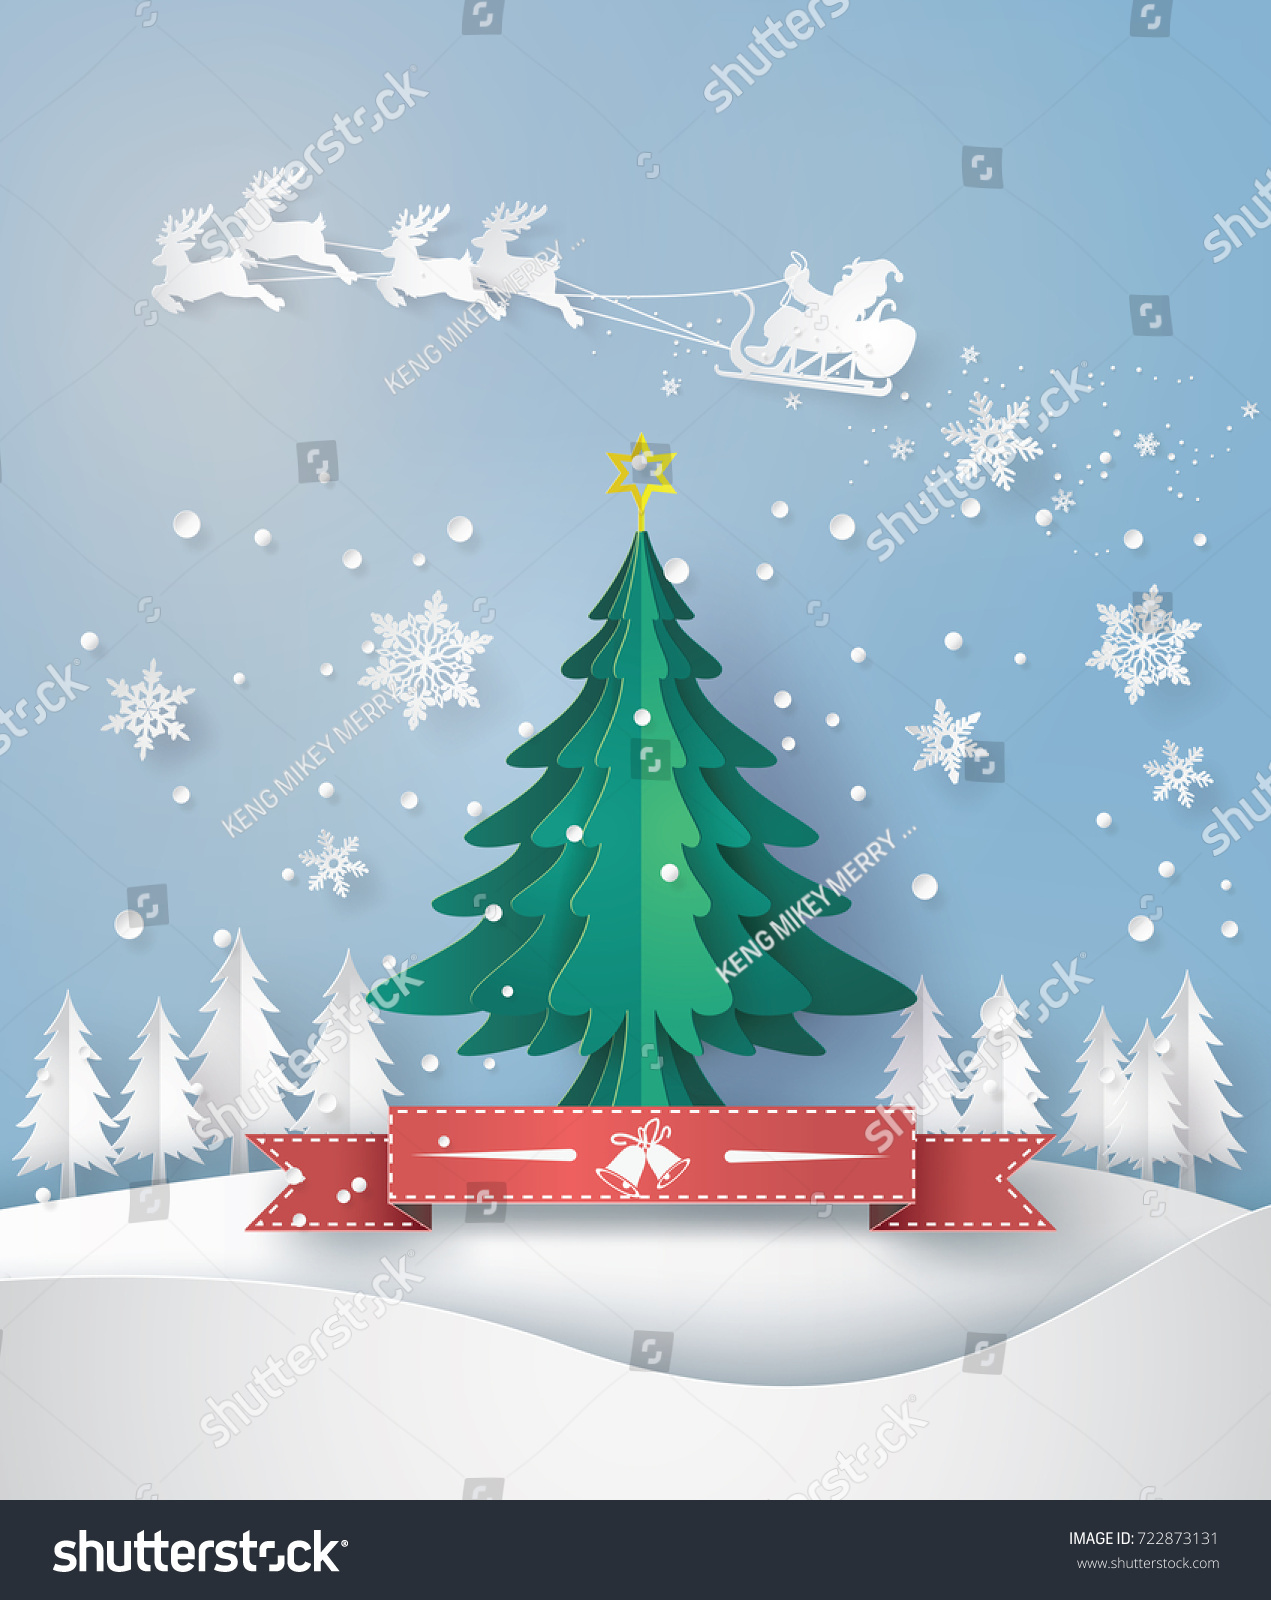 Merry christmas greeting card origami made stock vector 722873131 merry christmas greeting card with origami made christmas tree and snow flake paper art and kristyandbryce Images